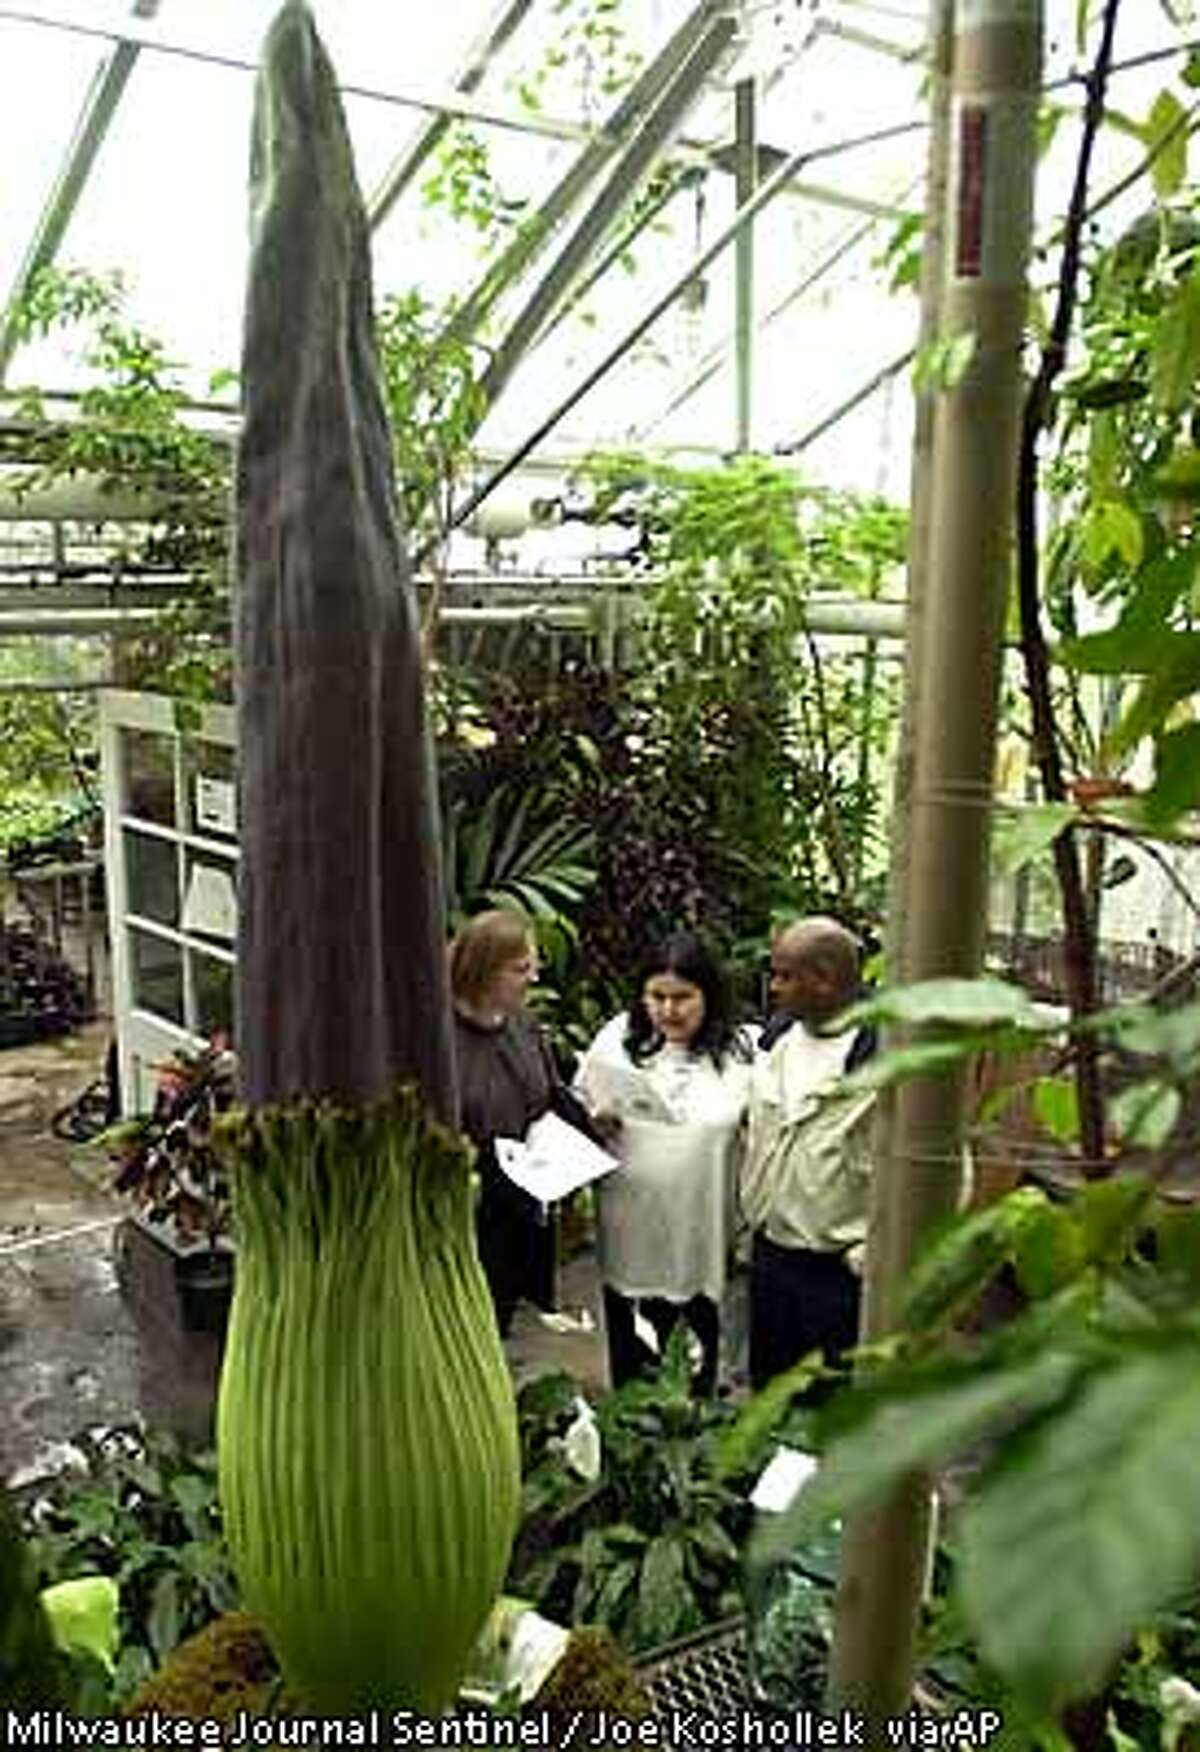 From left: Julie Hau, Vianey Acevedo, and Ronnie Midgette read up on gigantic Amorphophallus titanum, also know as the at Birge Hall Greenhouse at the University of Wisconsin Monday, June 4, 2001 in Madison, Wis. It is expected to bloom this Friday or sometime over the weekend for the first time since it was obtained about 10 years ago. Fewer than 15 such events involving the native Sumatran plant have been recorded in the United States. (AP Photo/Milwaukee Journal Sentinel, Joe Koshollek)